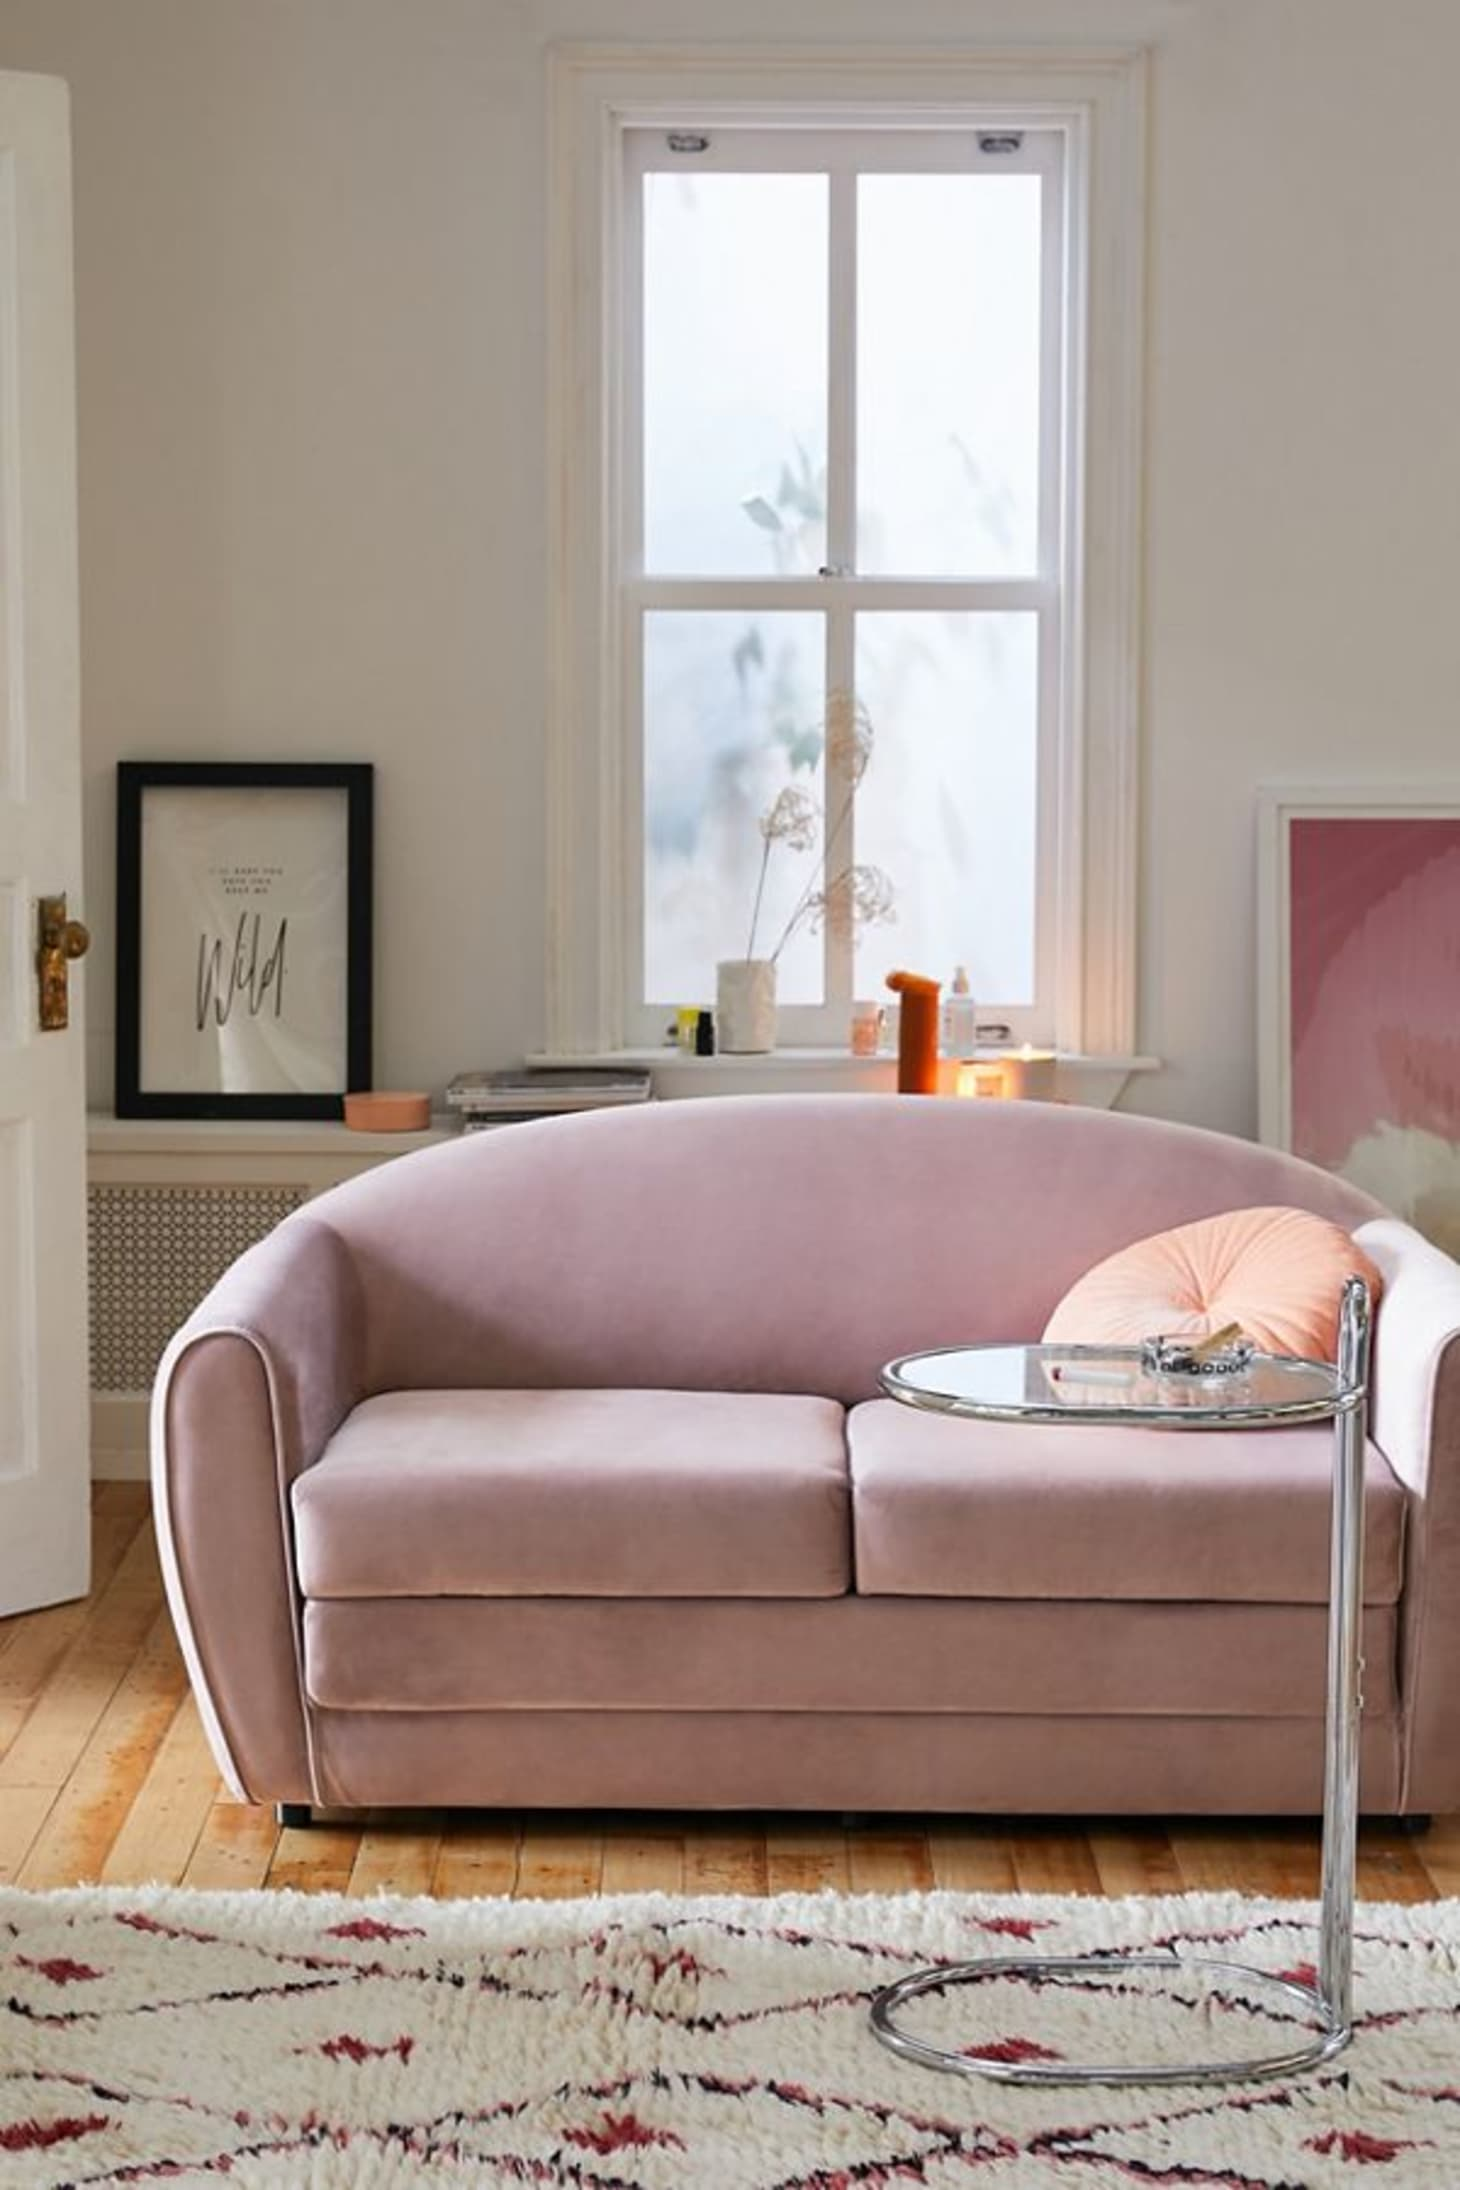 The Best Couches for Your Small Space | Apartment Therapy